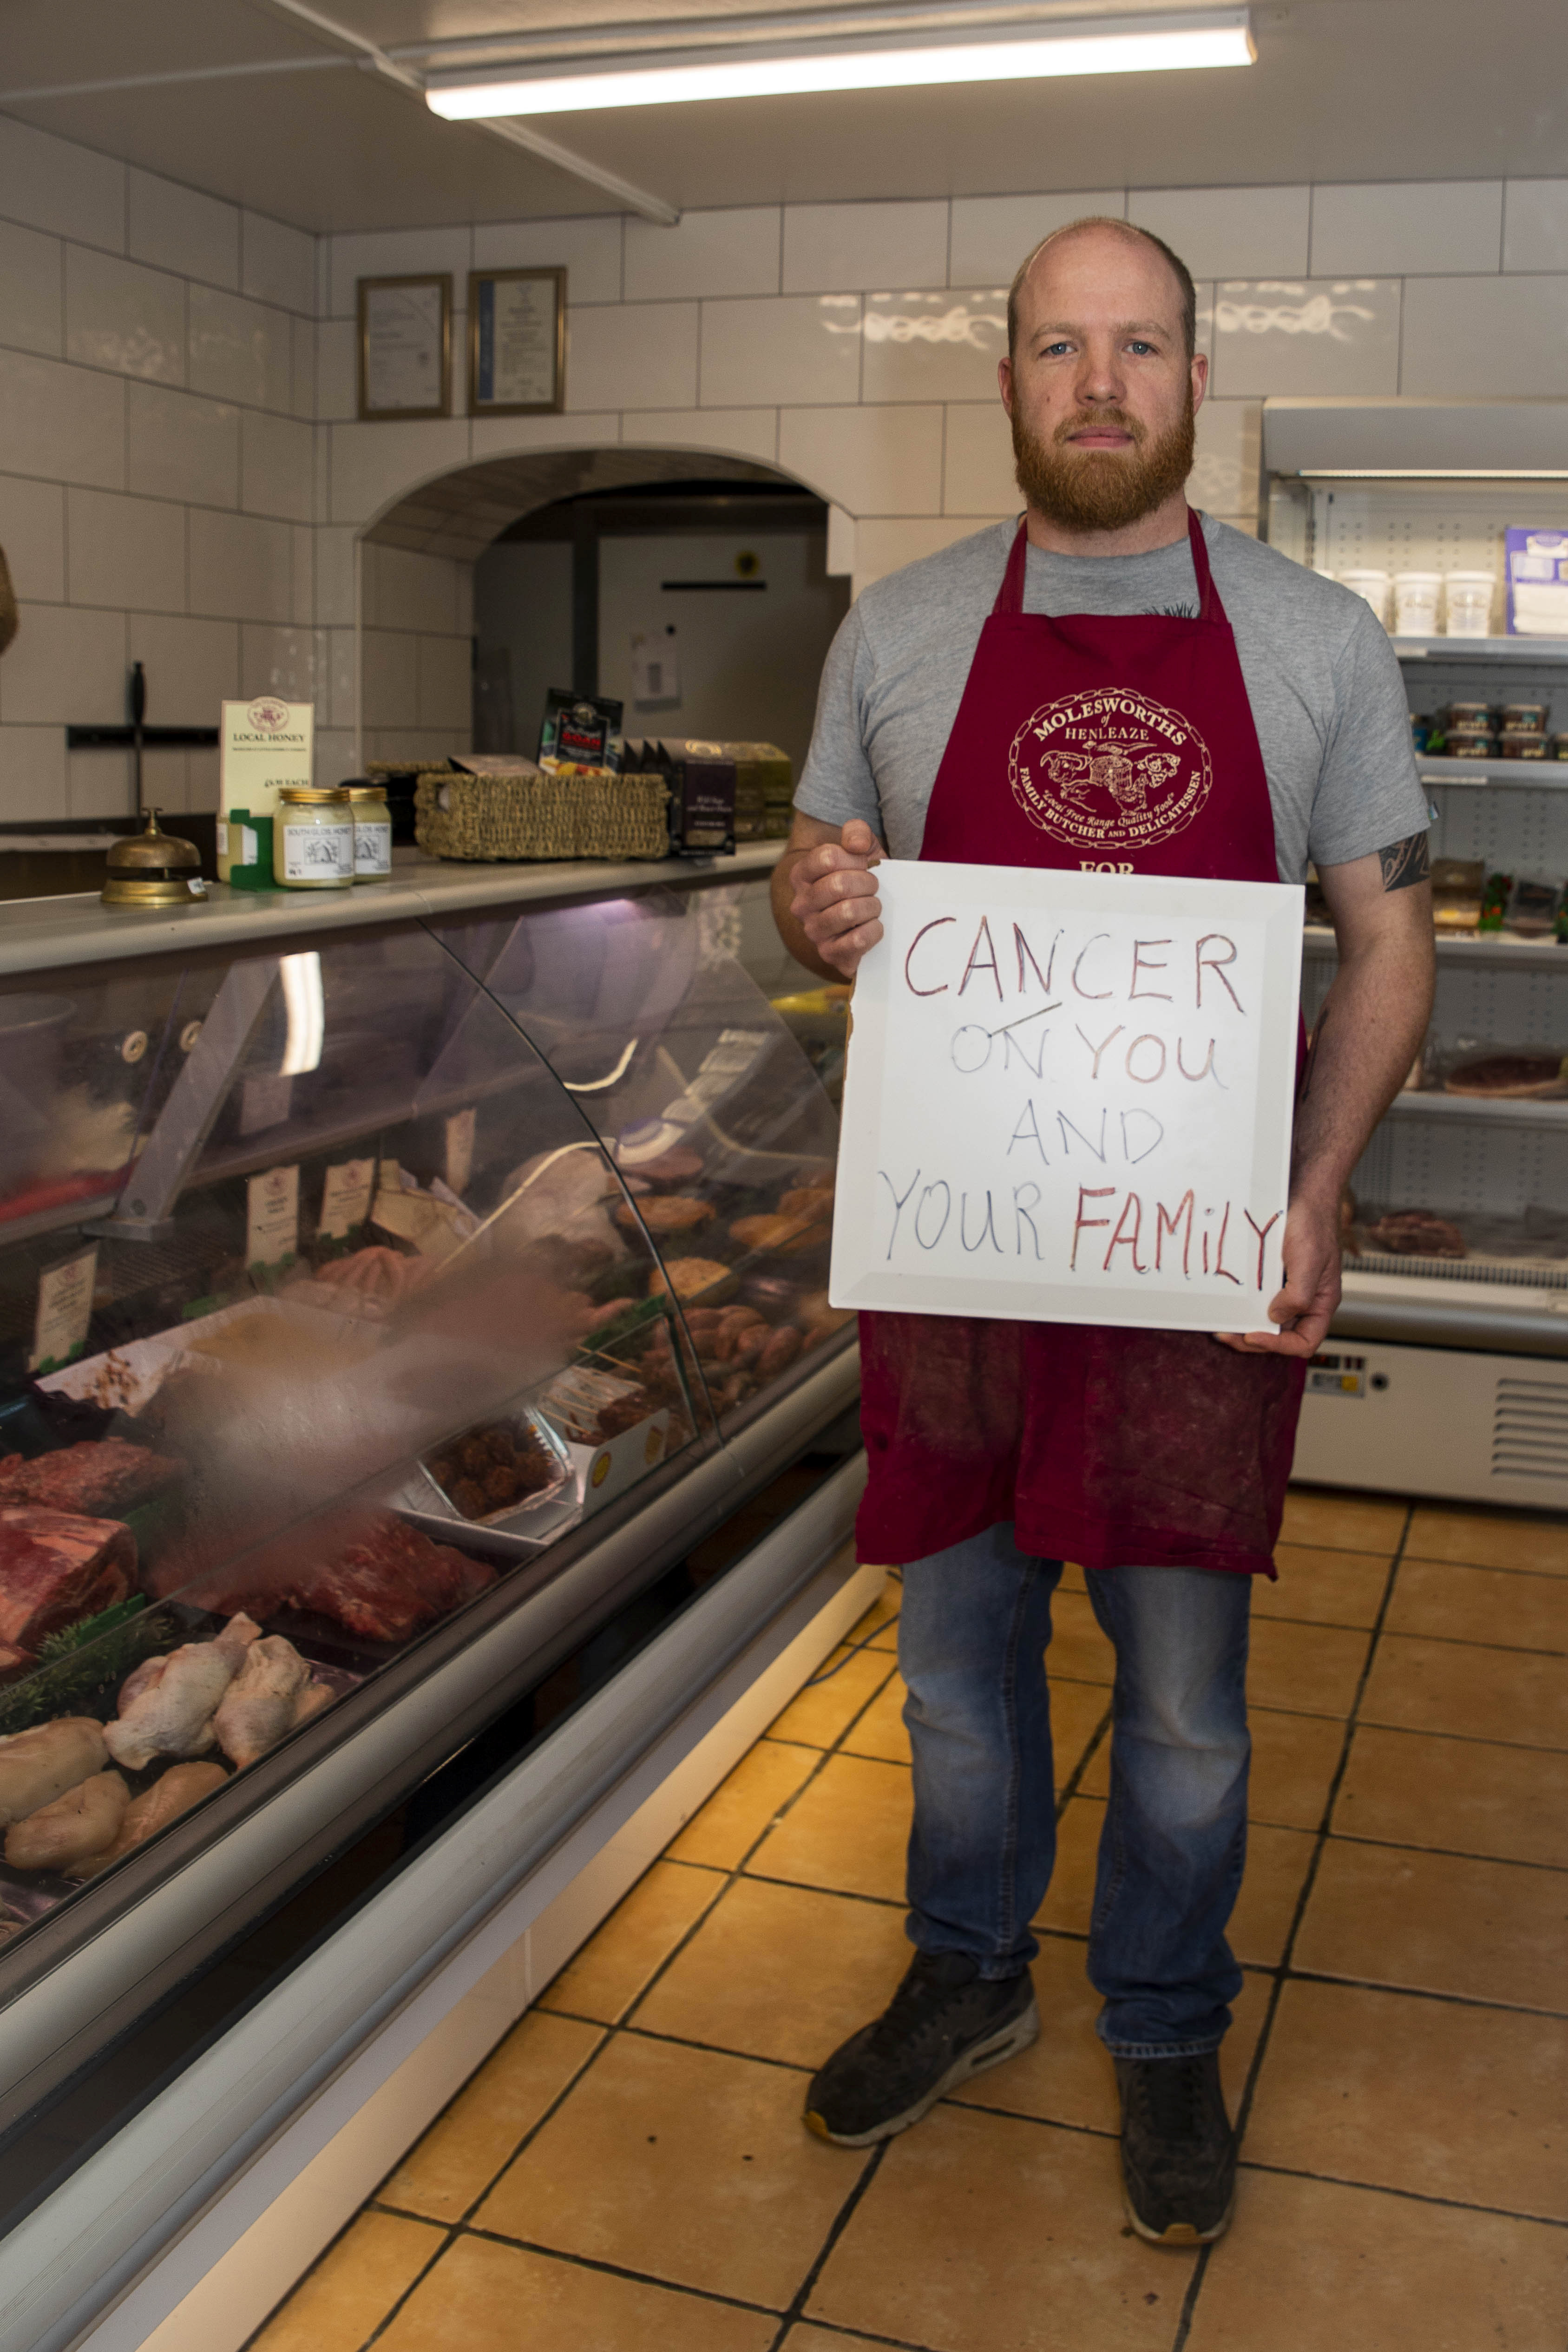 Vegan Protesters Wish Cancer On Butcher's Family